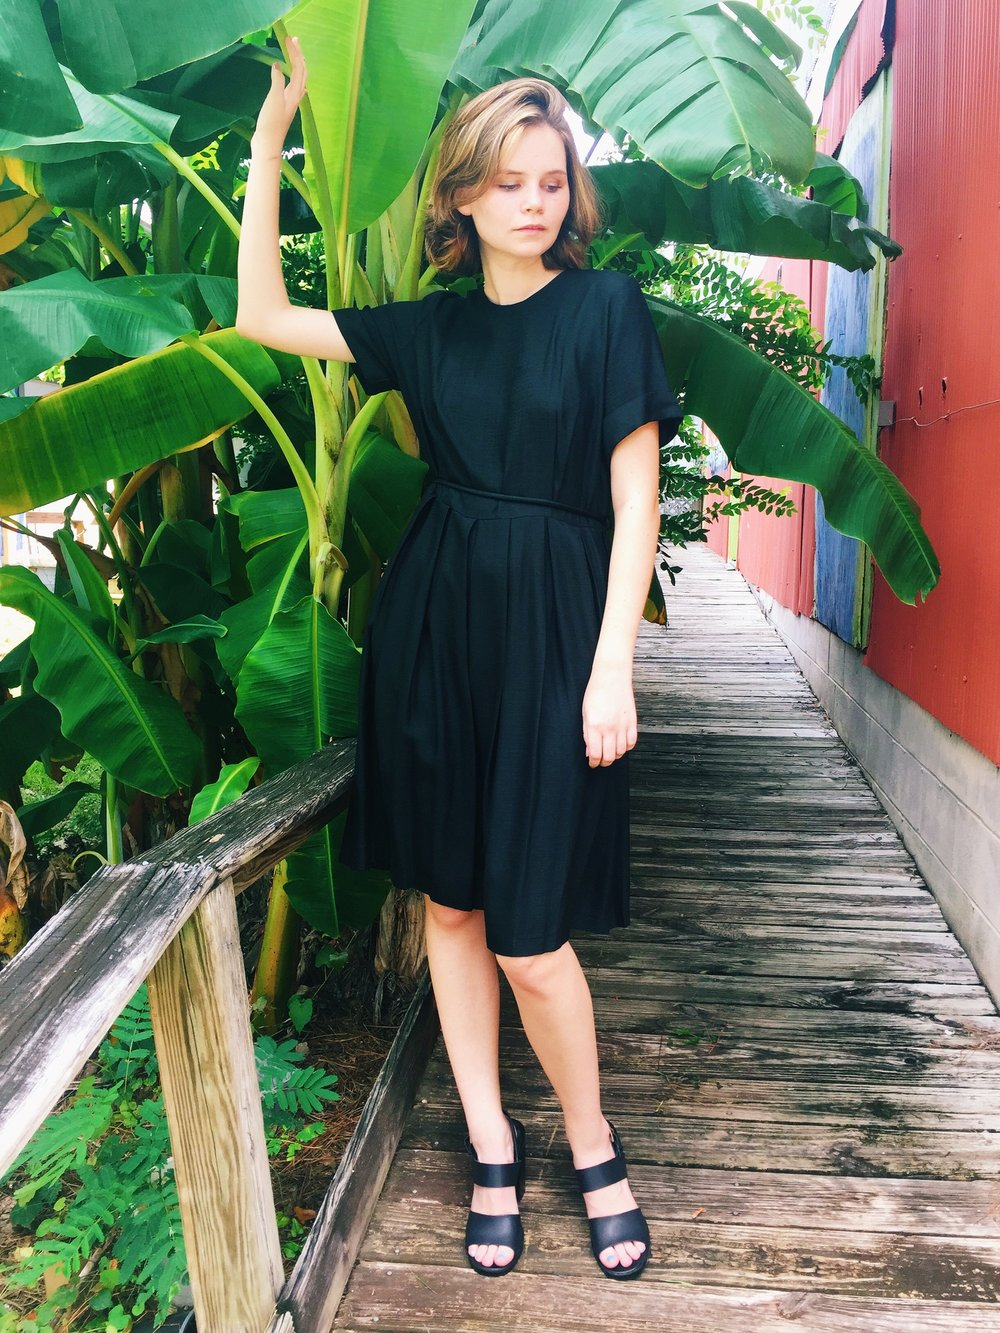 wonaponatime-vintage-lookbook-black-dress-green-plants